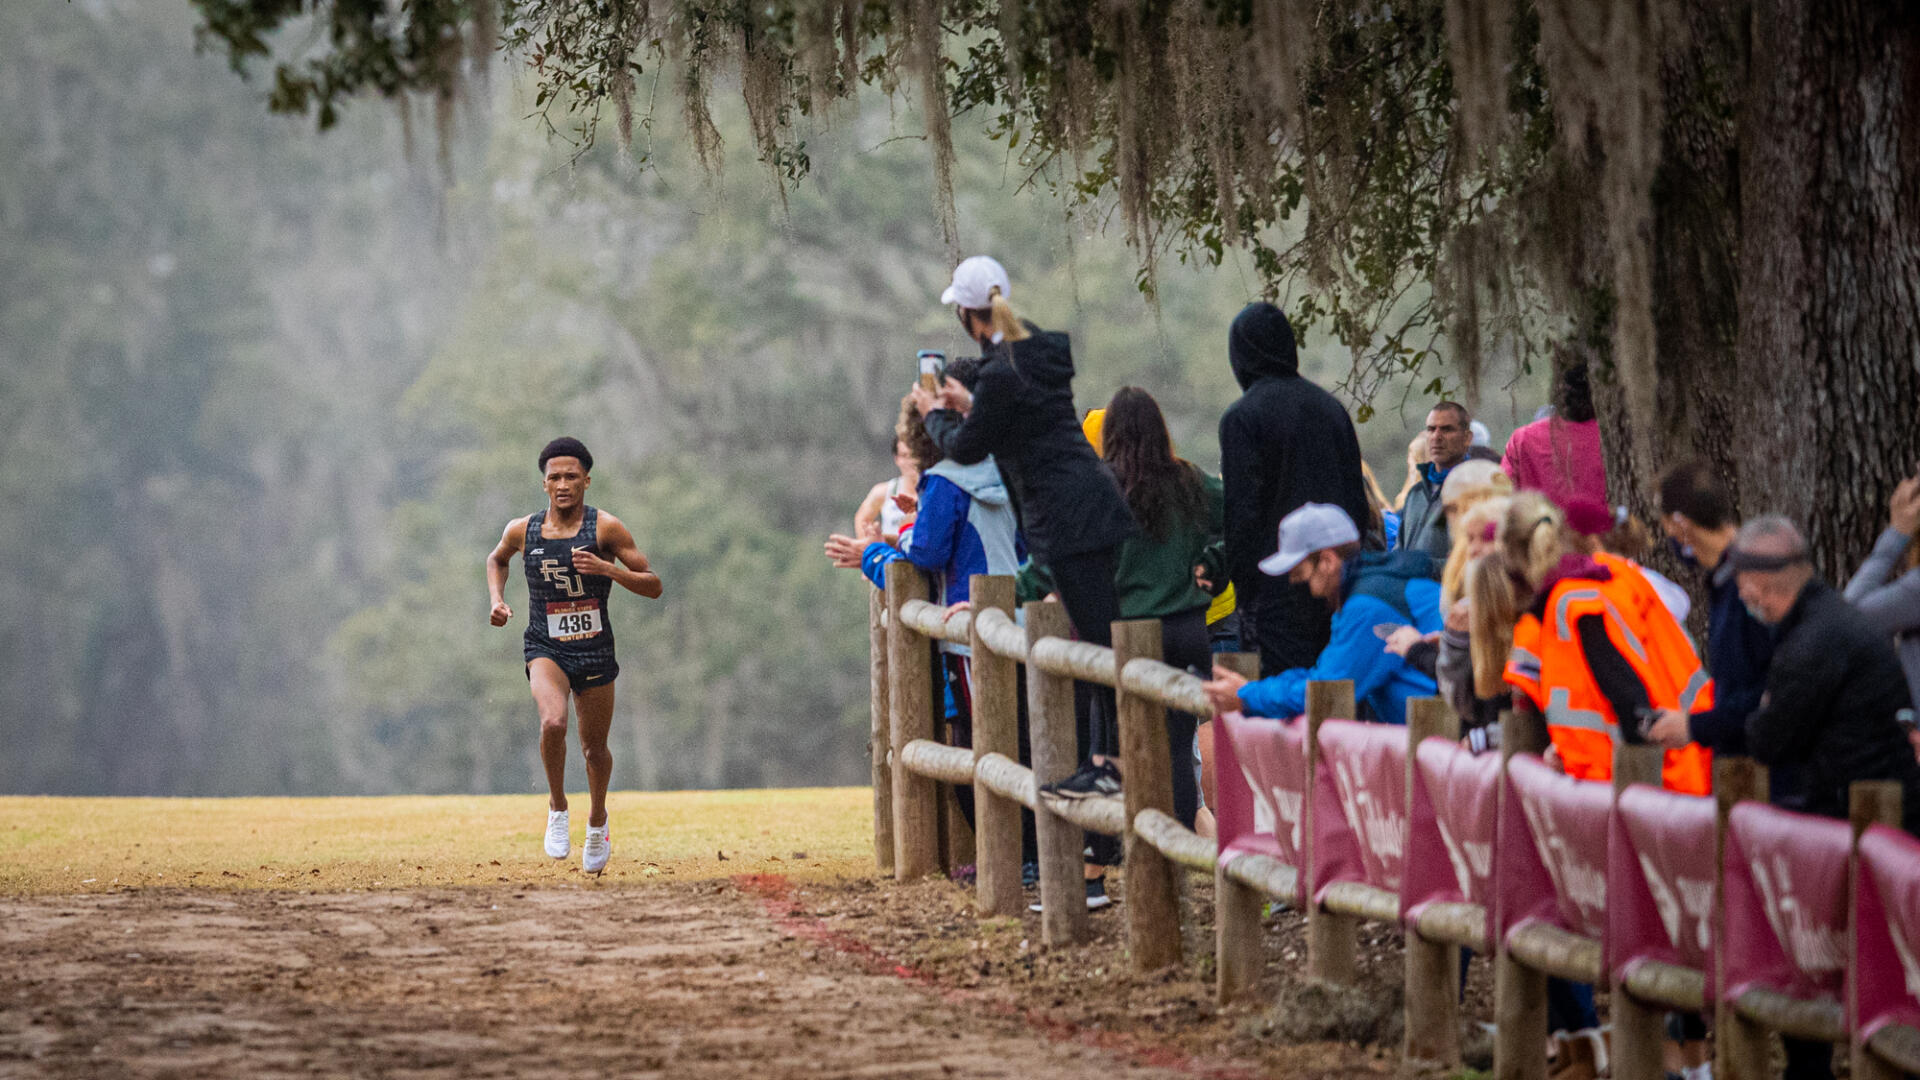 Wildschutt Named ACC Performer of the Week